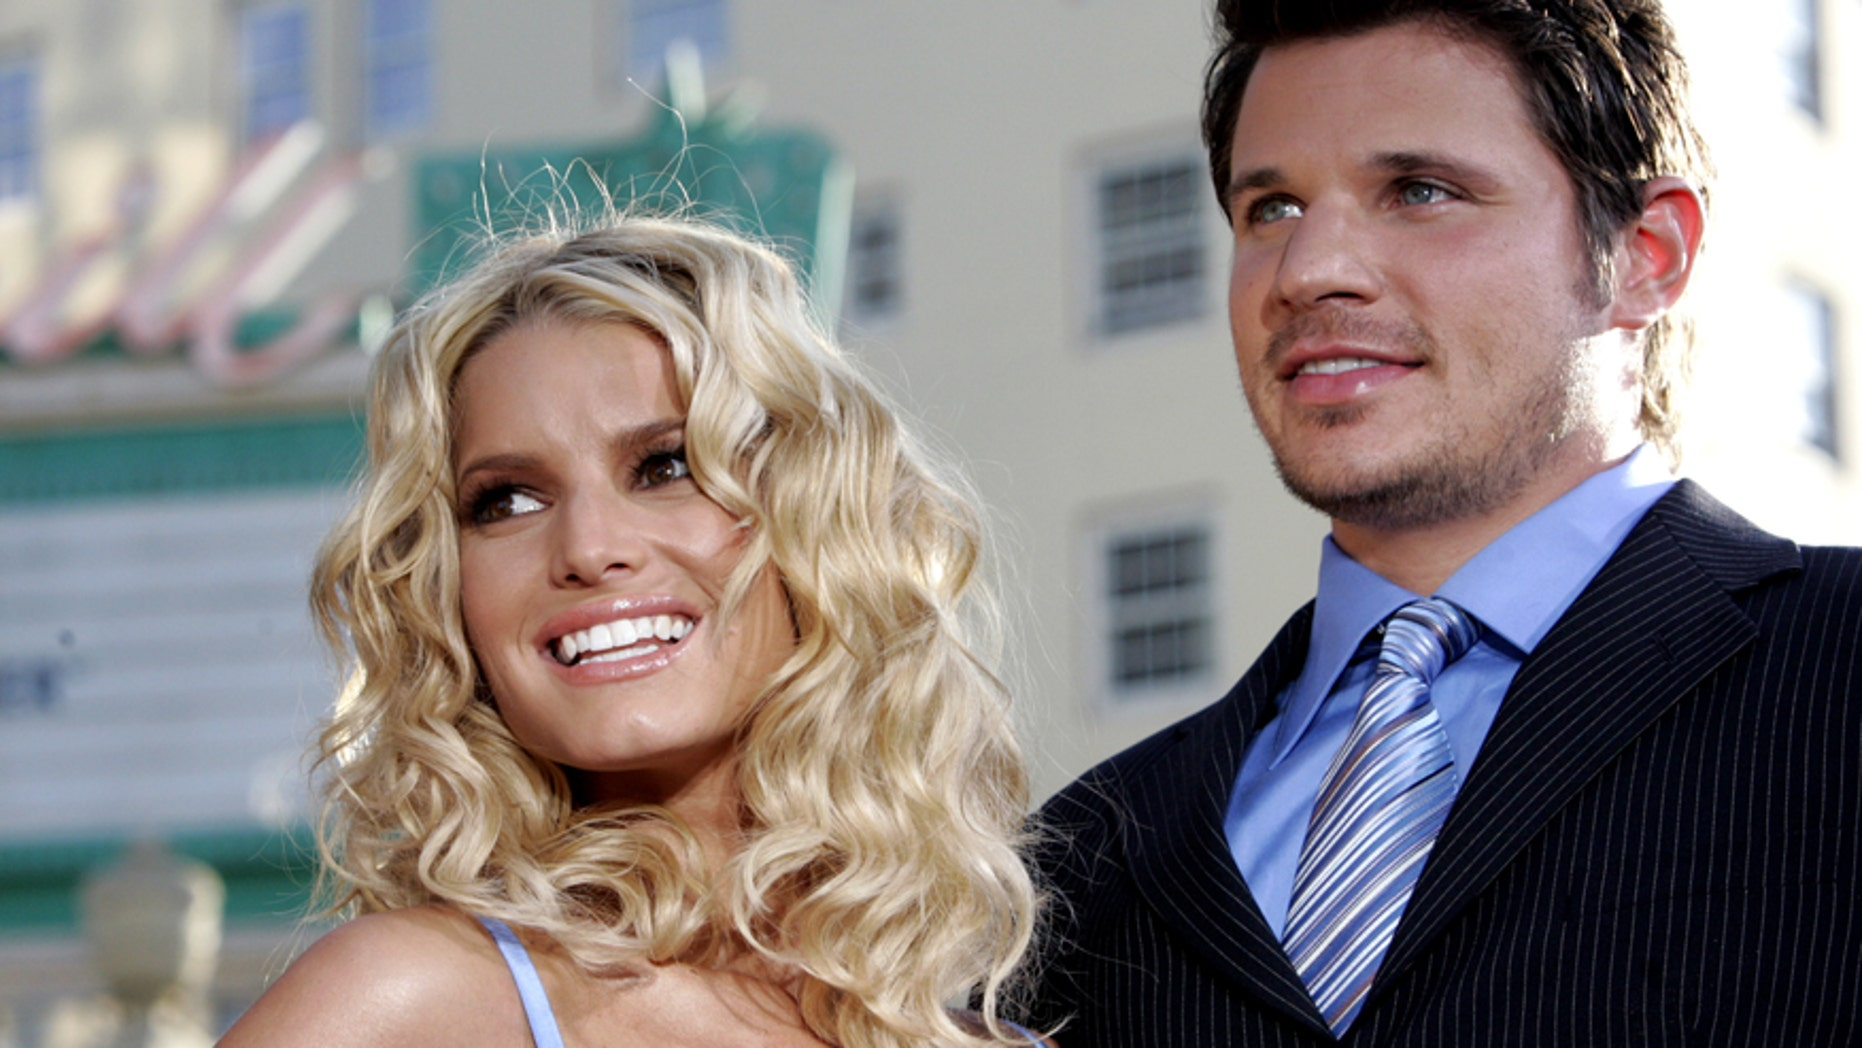 """Actress Jessica Simpson (L) and her husband Nick Lachey arrive at the Los Angeles premiere of Warner Brothers pictures """"The Dukes of Hazzard"""" at the Grauman's Chinese theatre in Hollywood on July 28, 2005."""